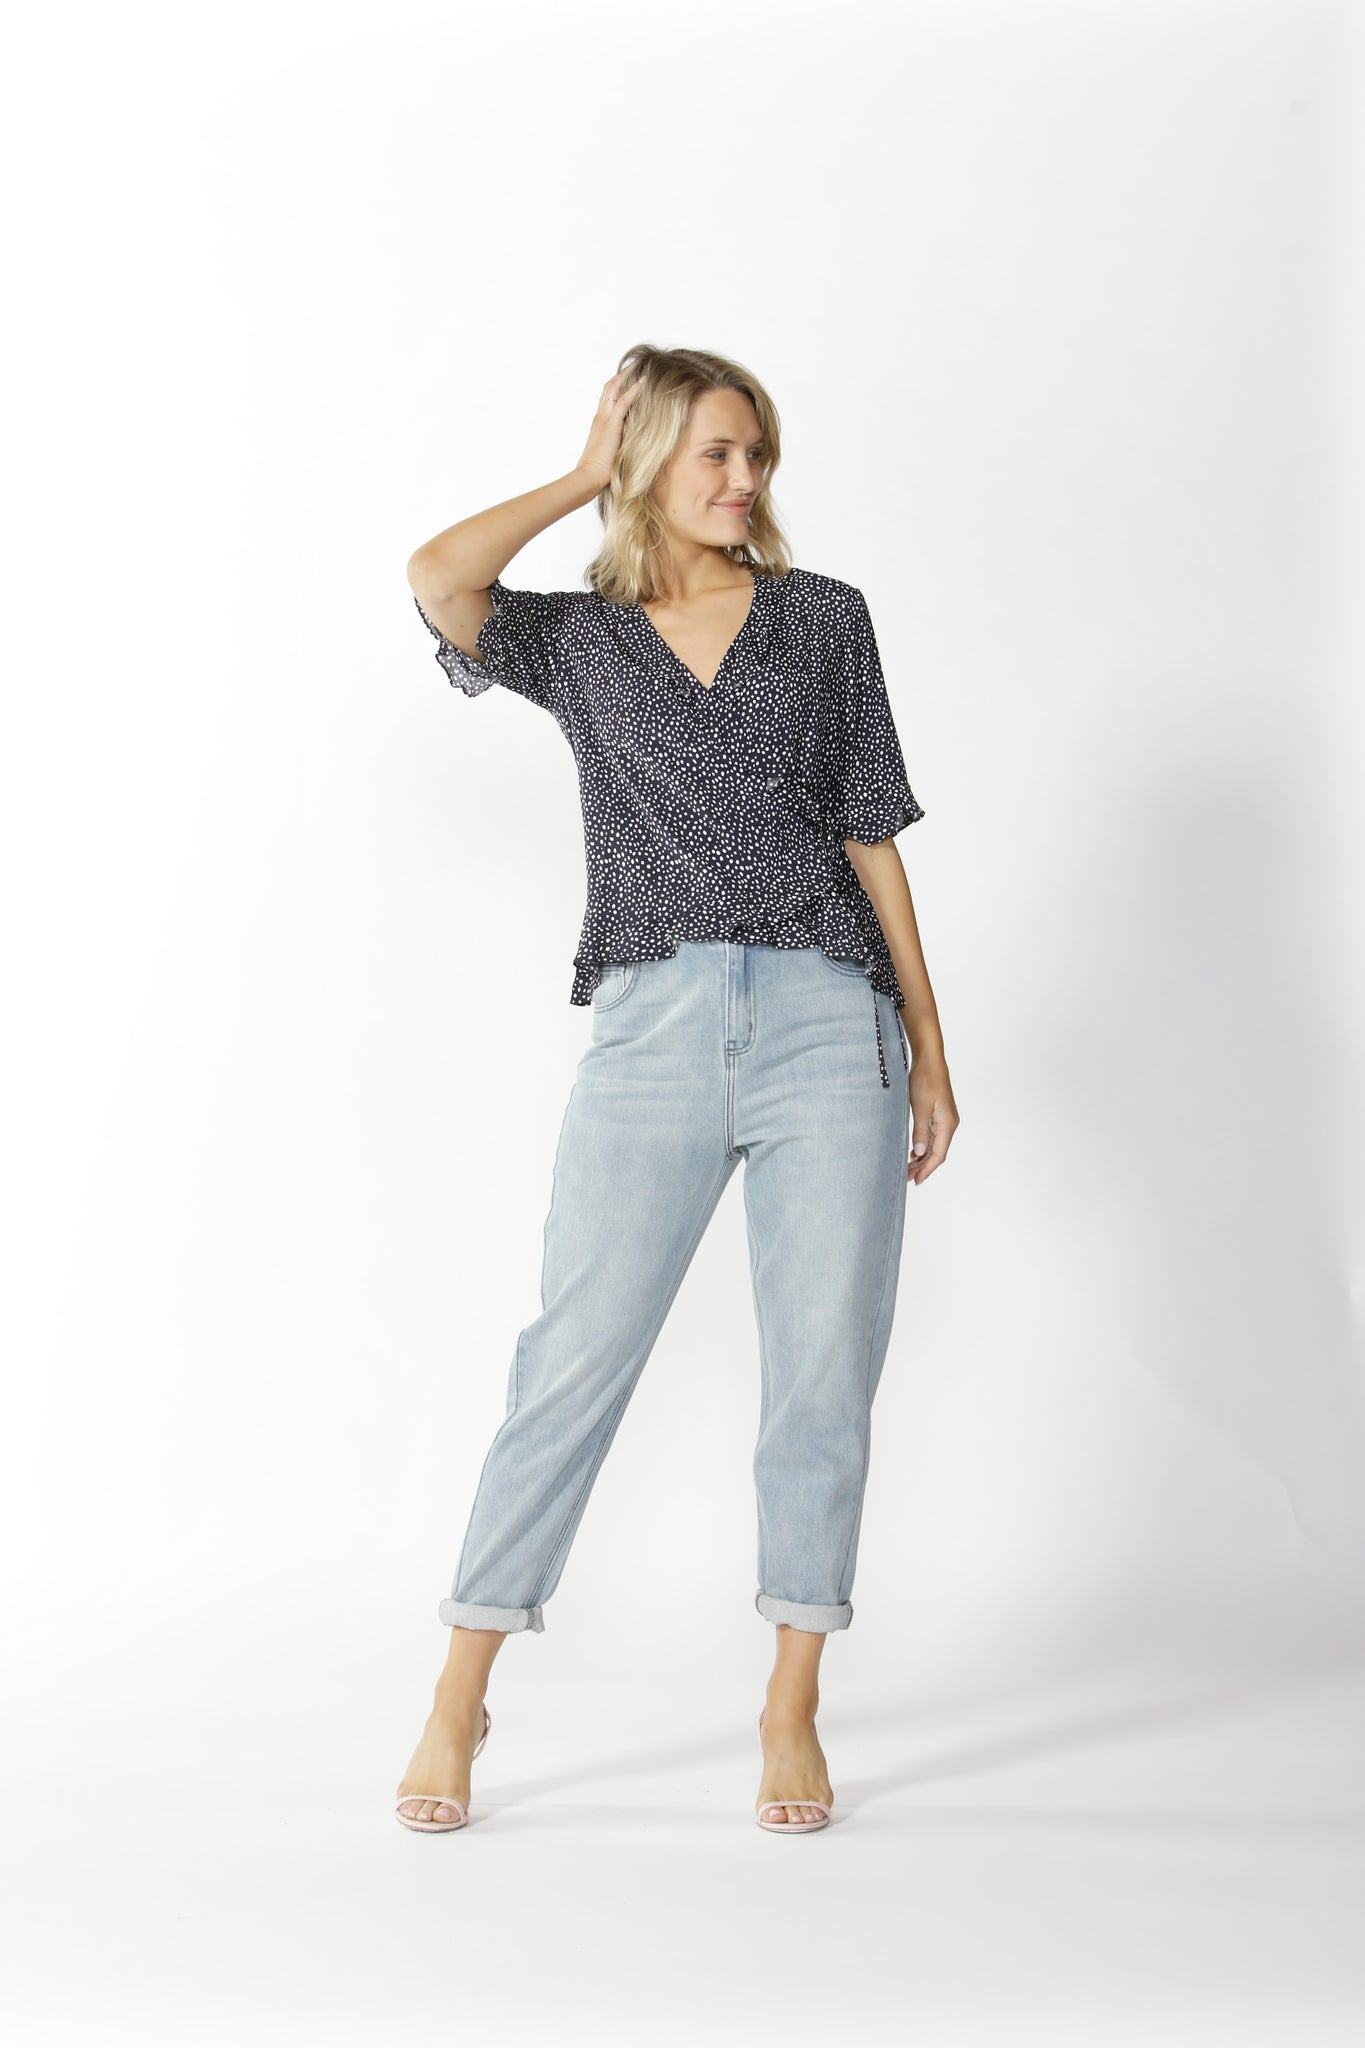 LISBON WRAP TOP NAVY POLKA DOT